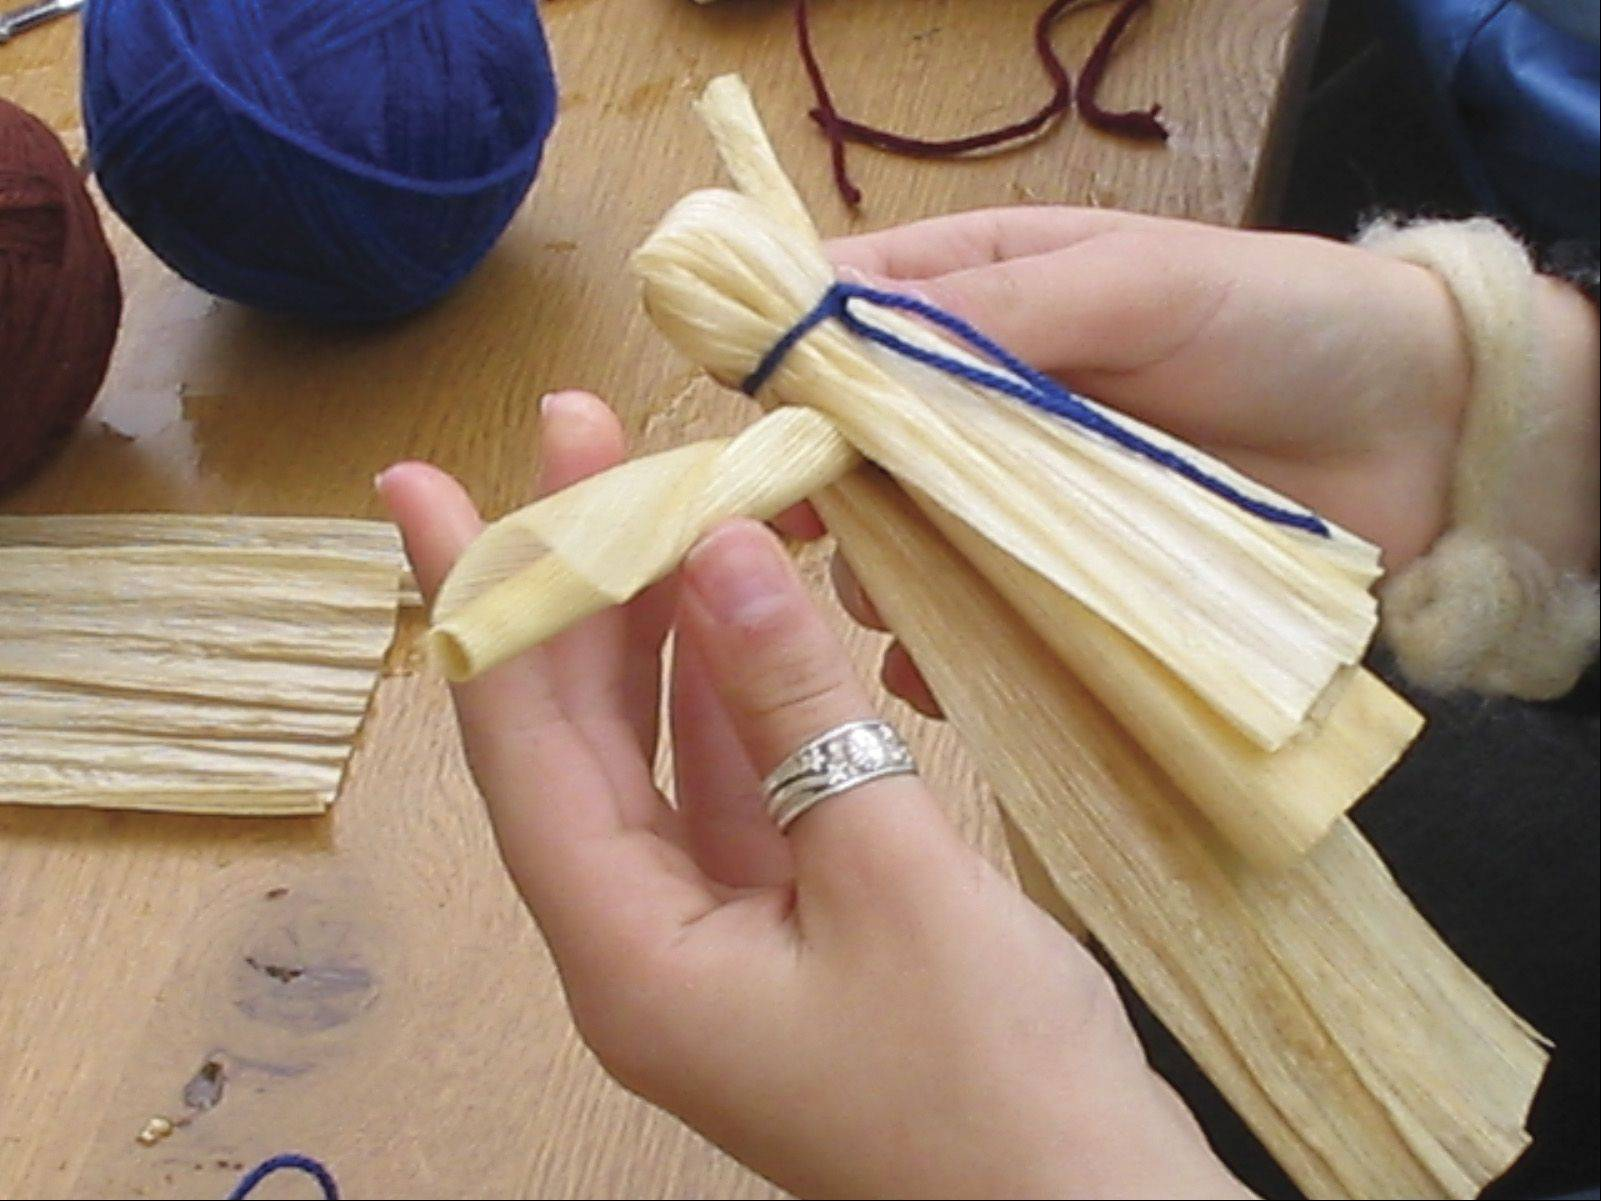 Crafts similar to those of the period can be seen as they're made.